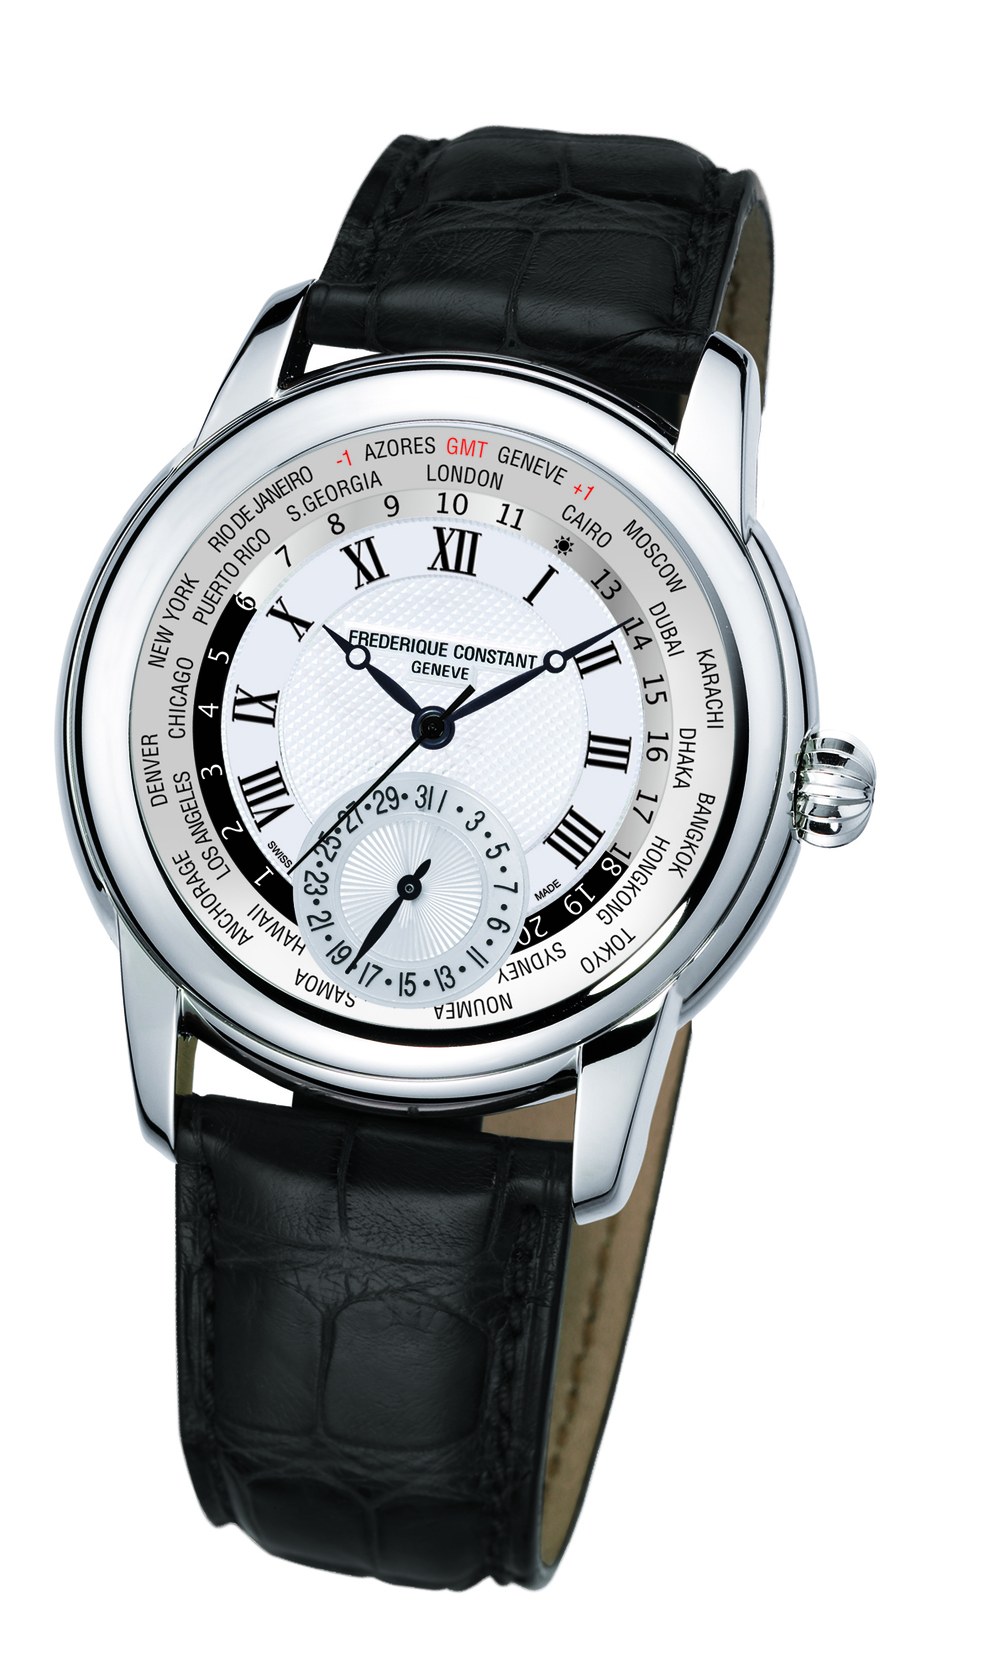 Guilloché Dial With Roman Numerals and Black Accents